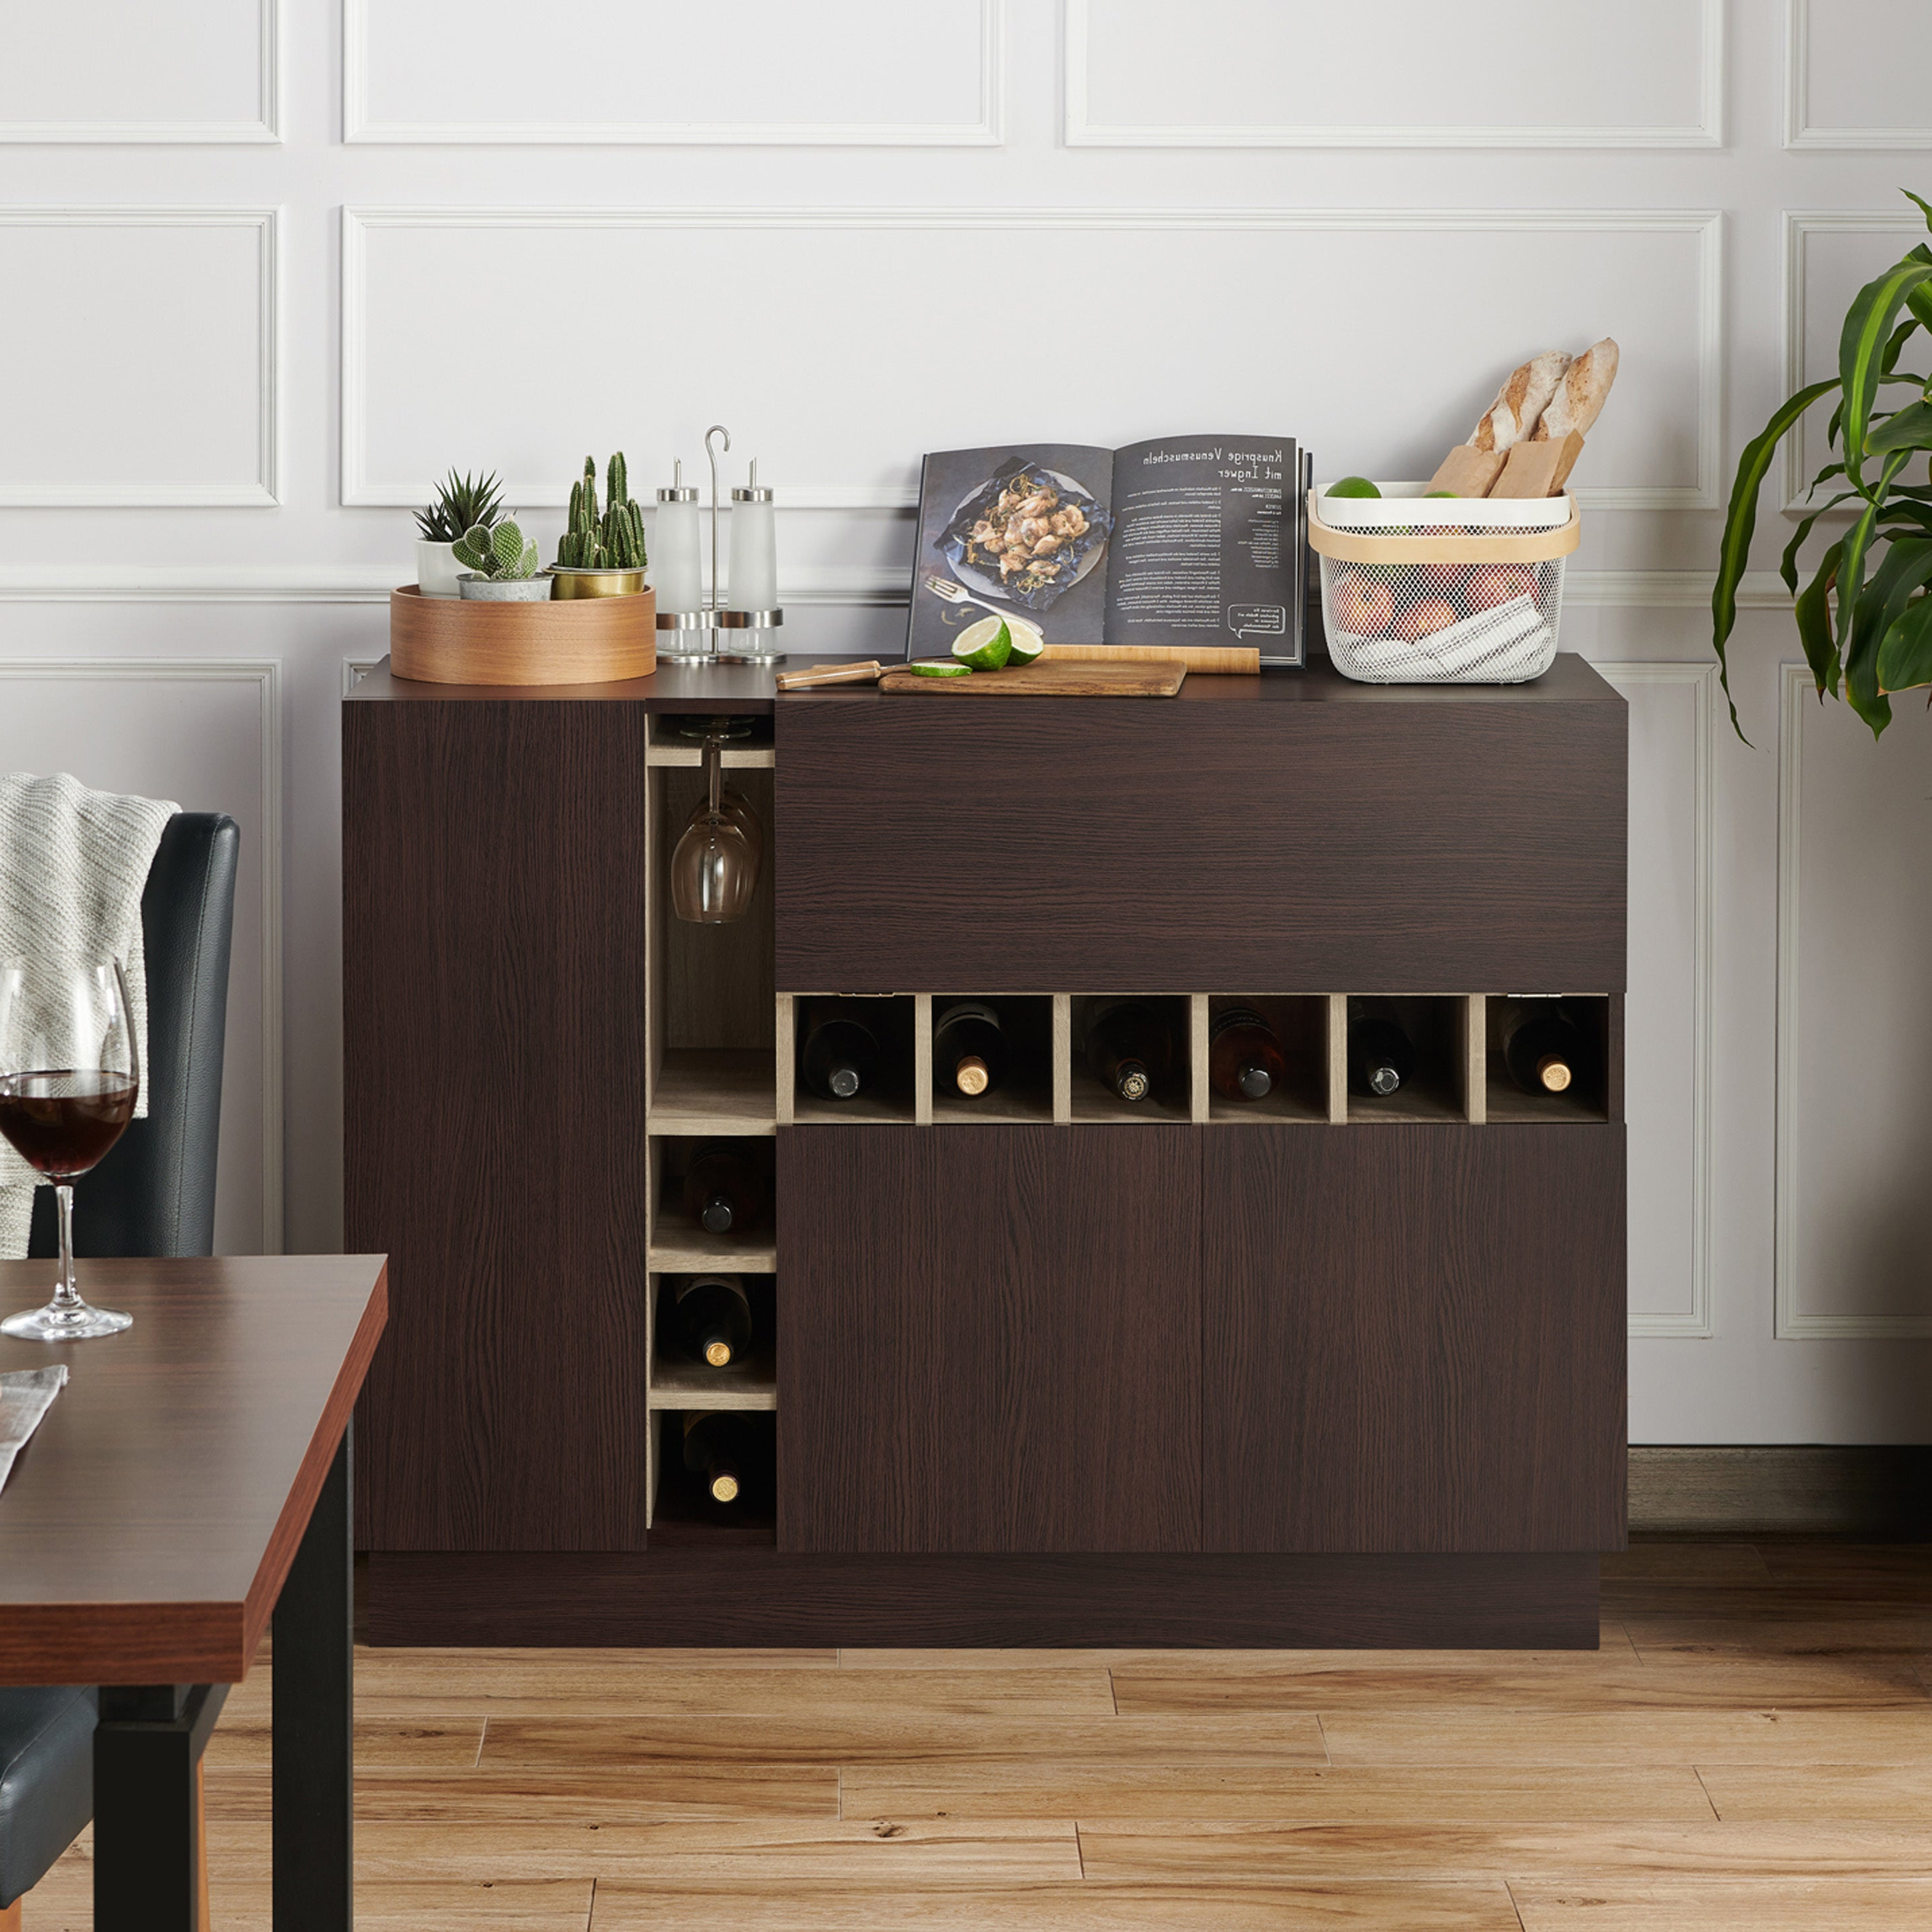 Miyoa Modern Espresso Storage Buffet Serverfoa Regarding Carrera Contemporary Black Dining Buffets (View 19 of 20)